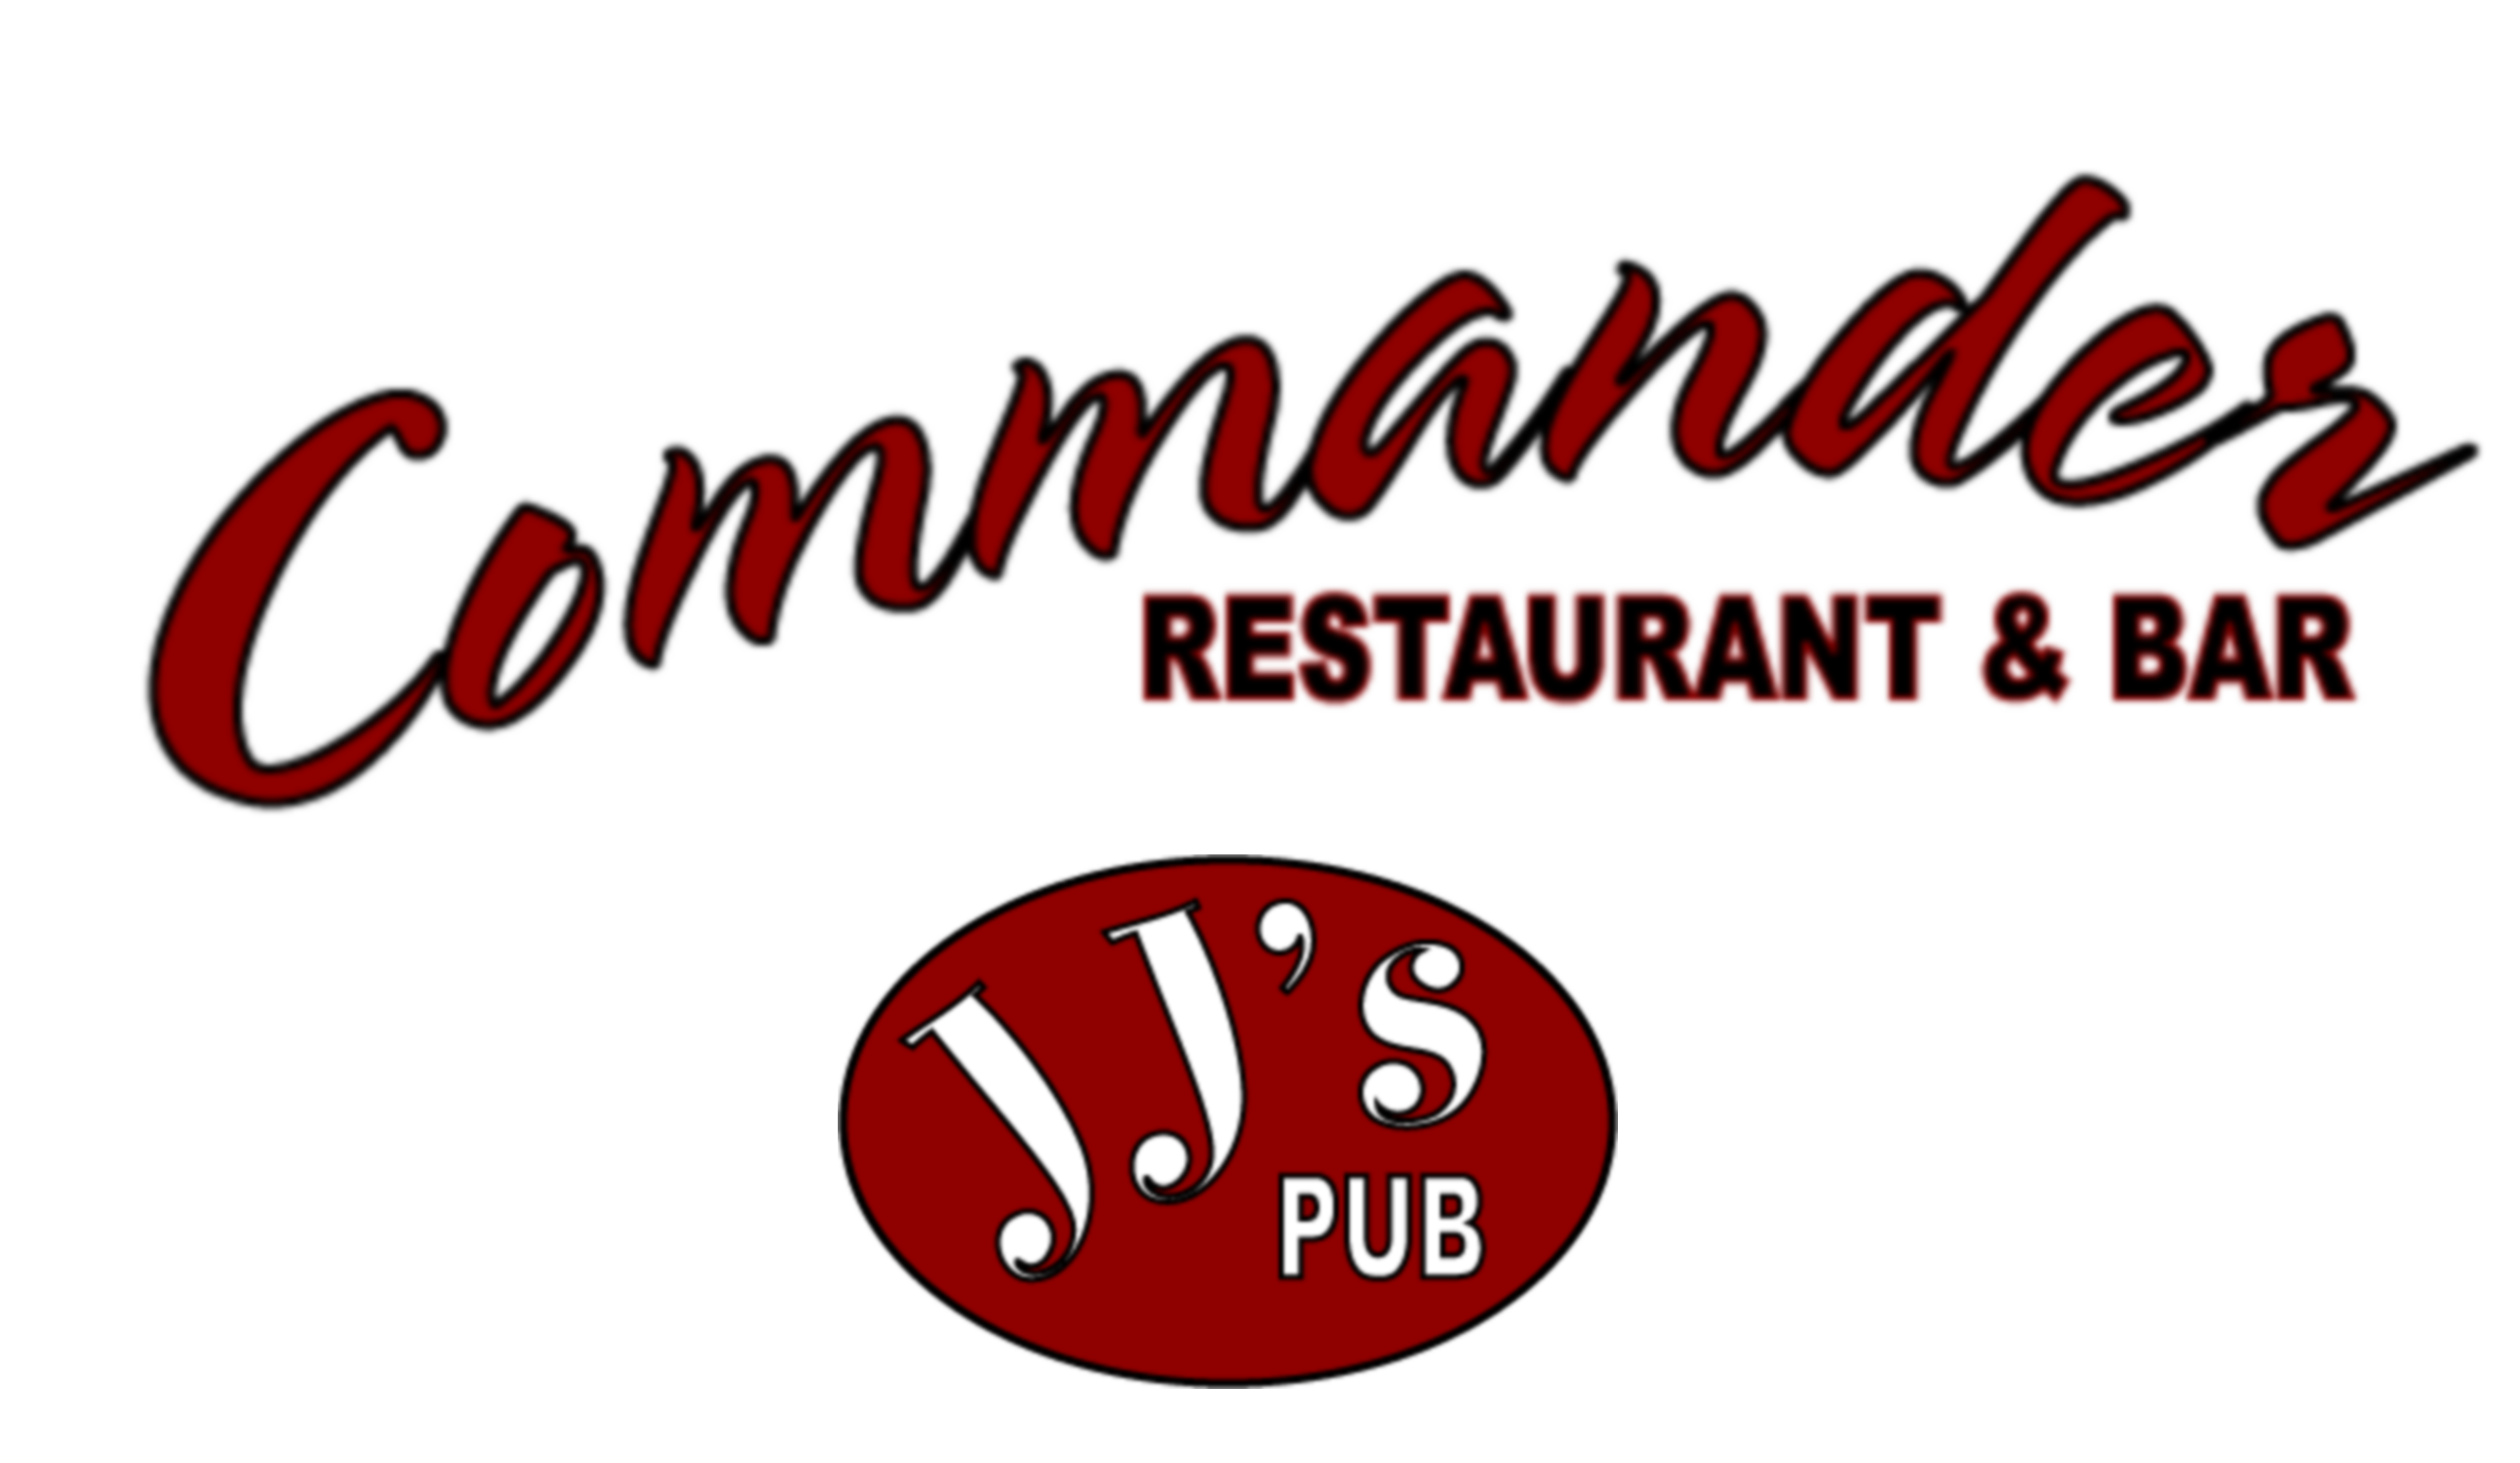 The Commander Restaurant & Bar